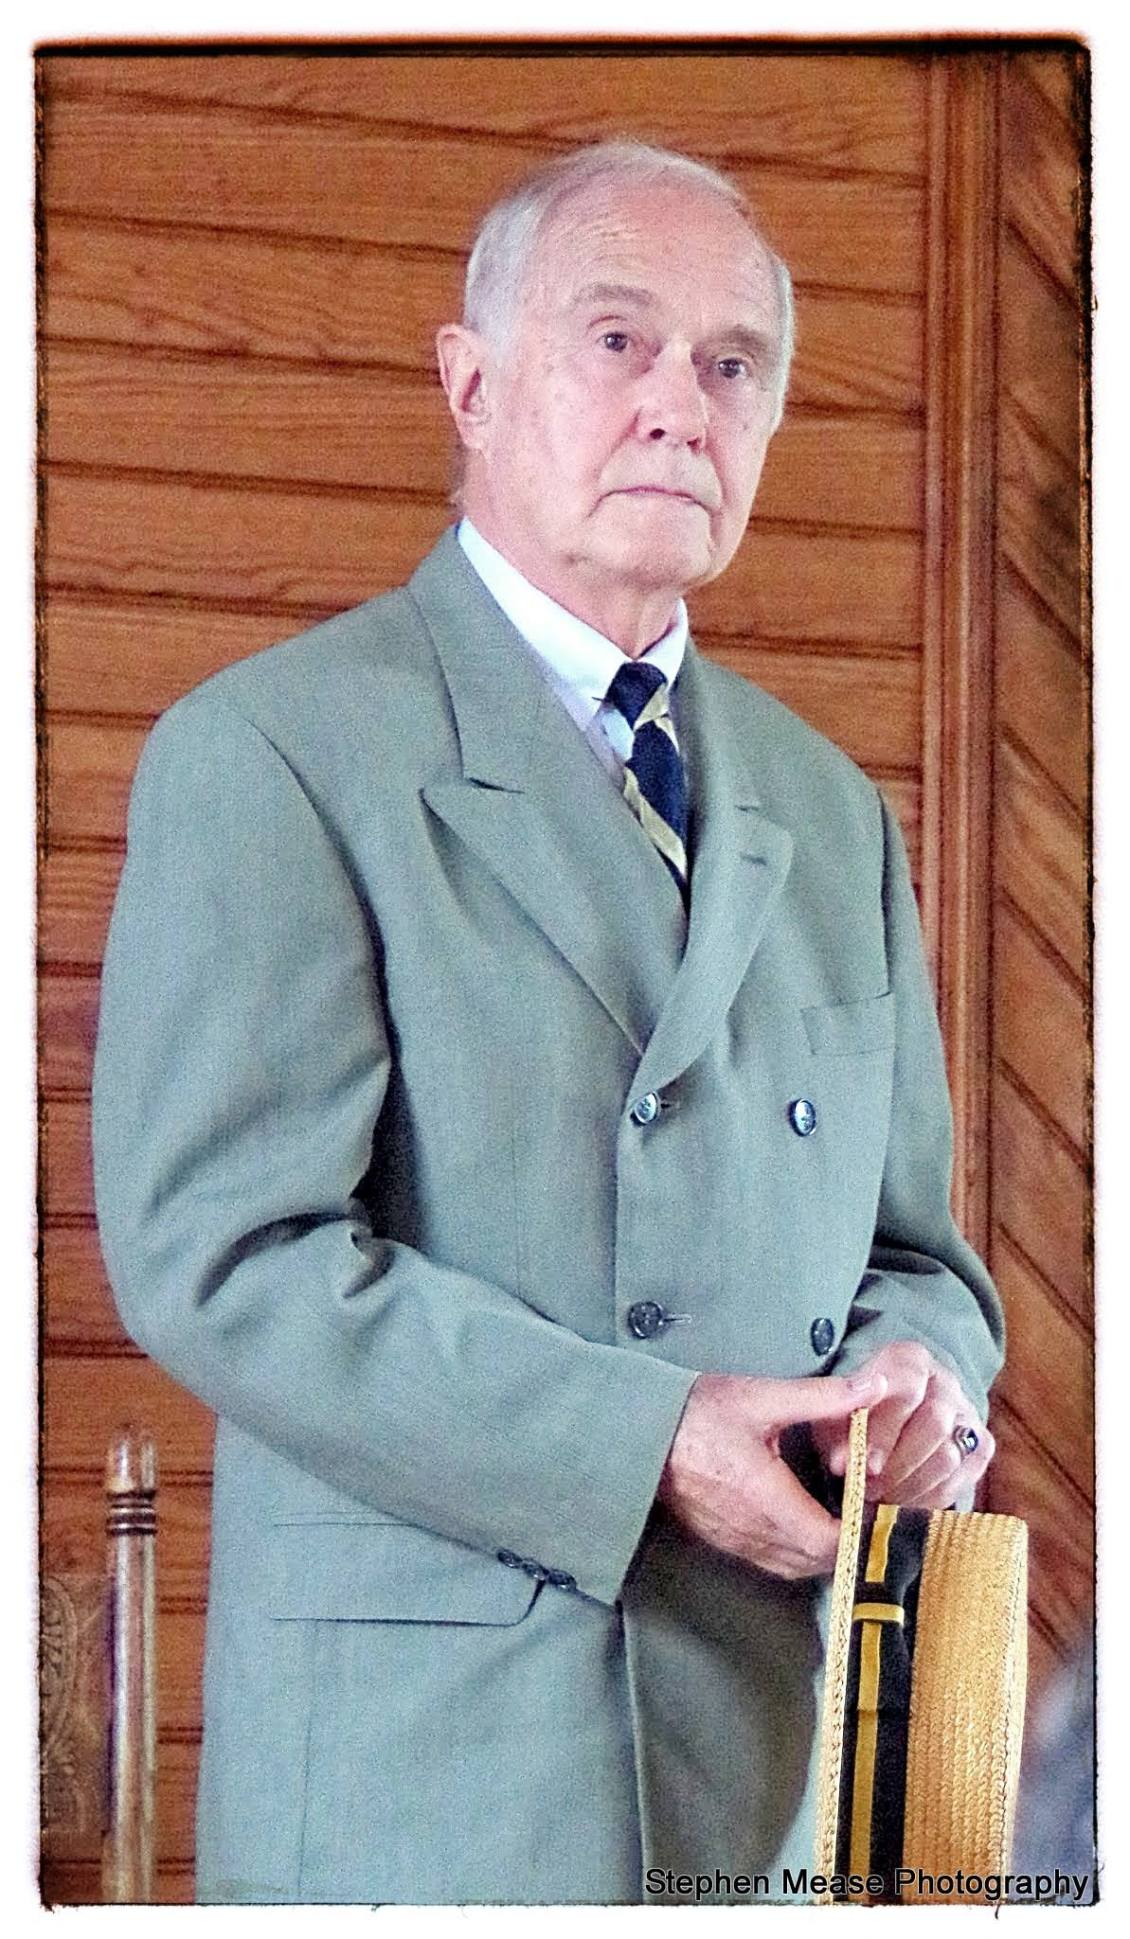 Mr. Jim Cooke as President Coolidge, July 4, 2015